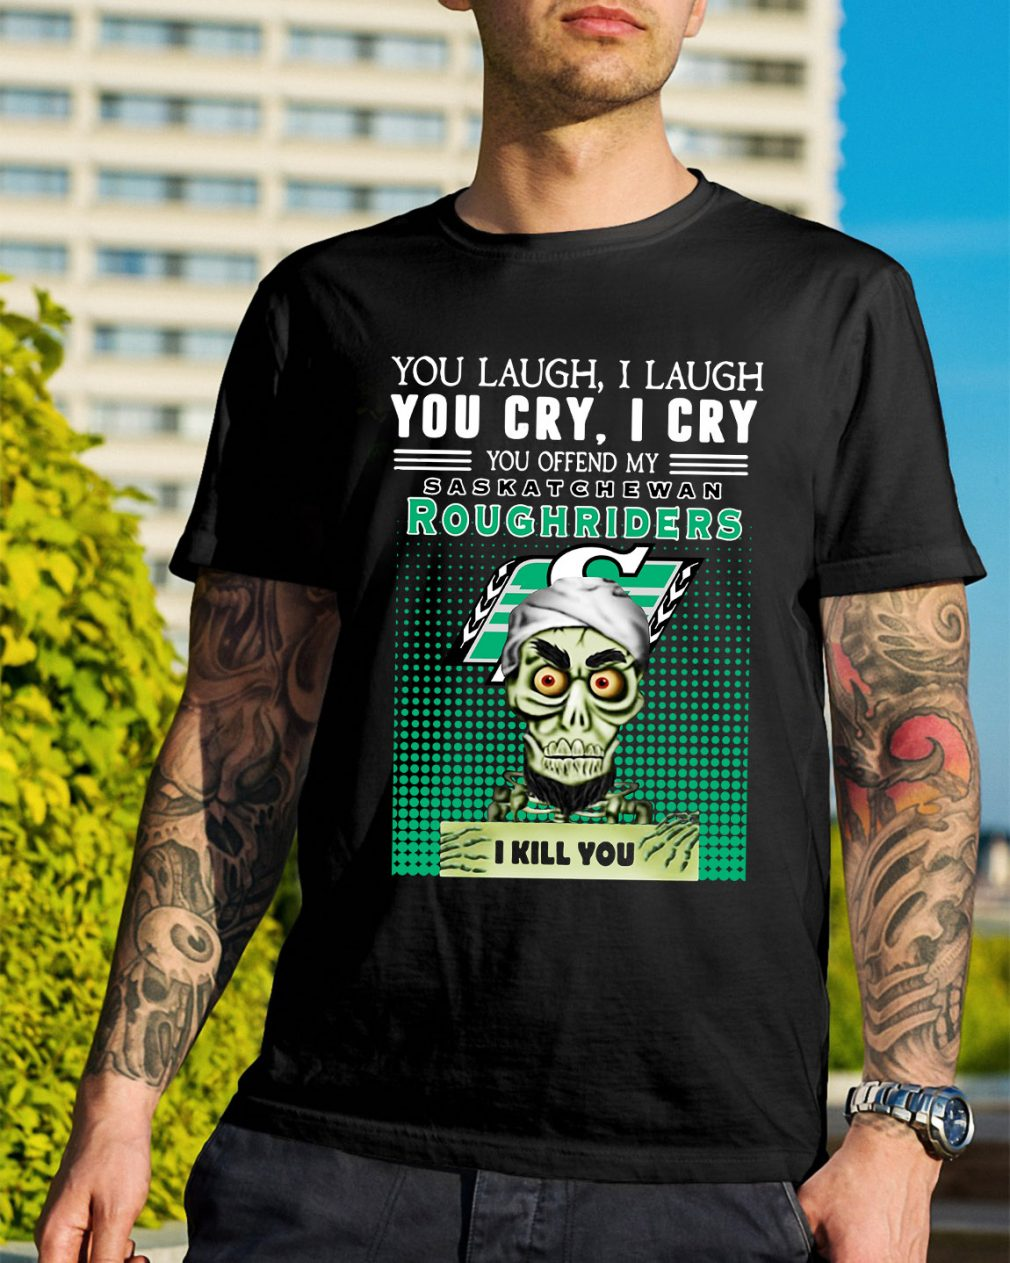 You laugh I laugh you cry I cry you take my Roughriders I kill you shirt